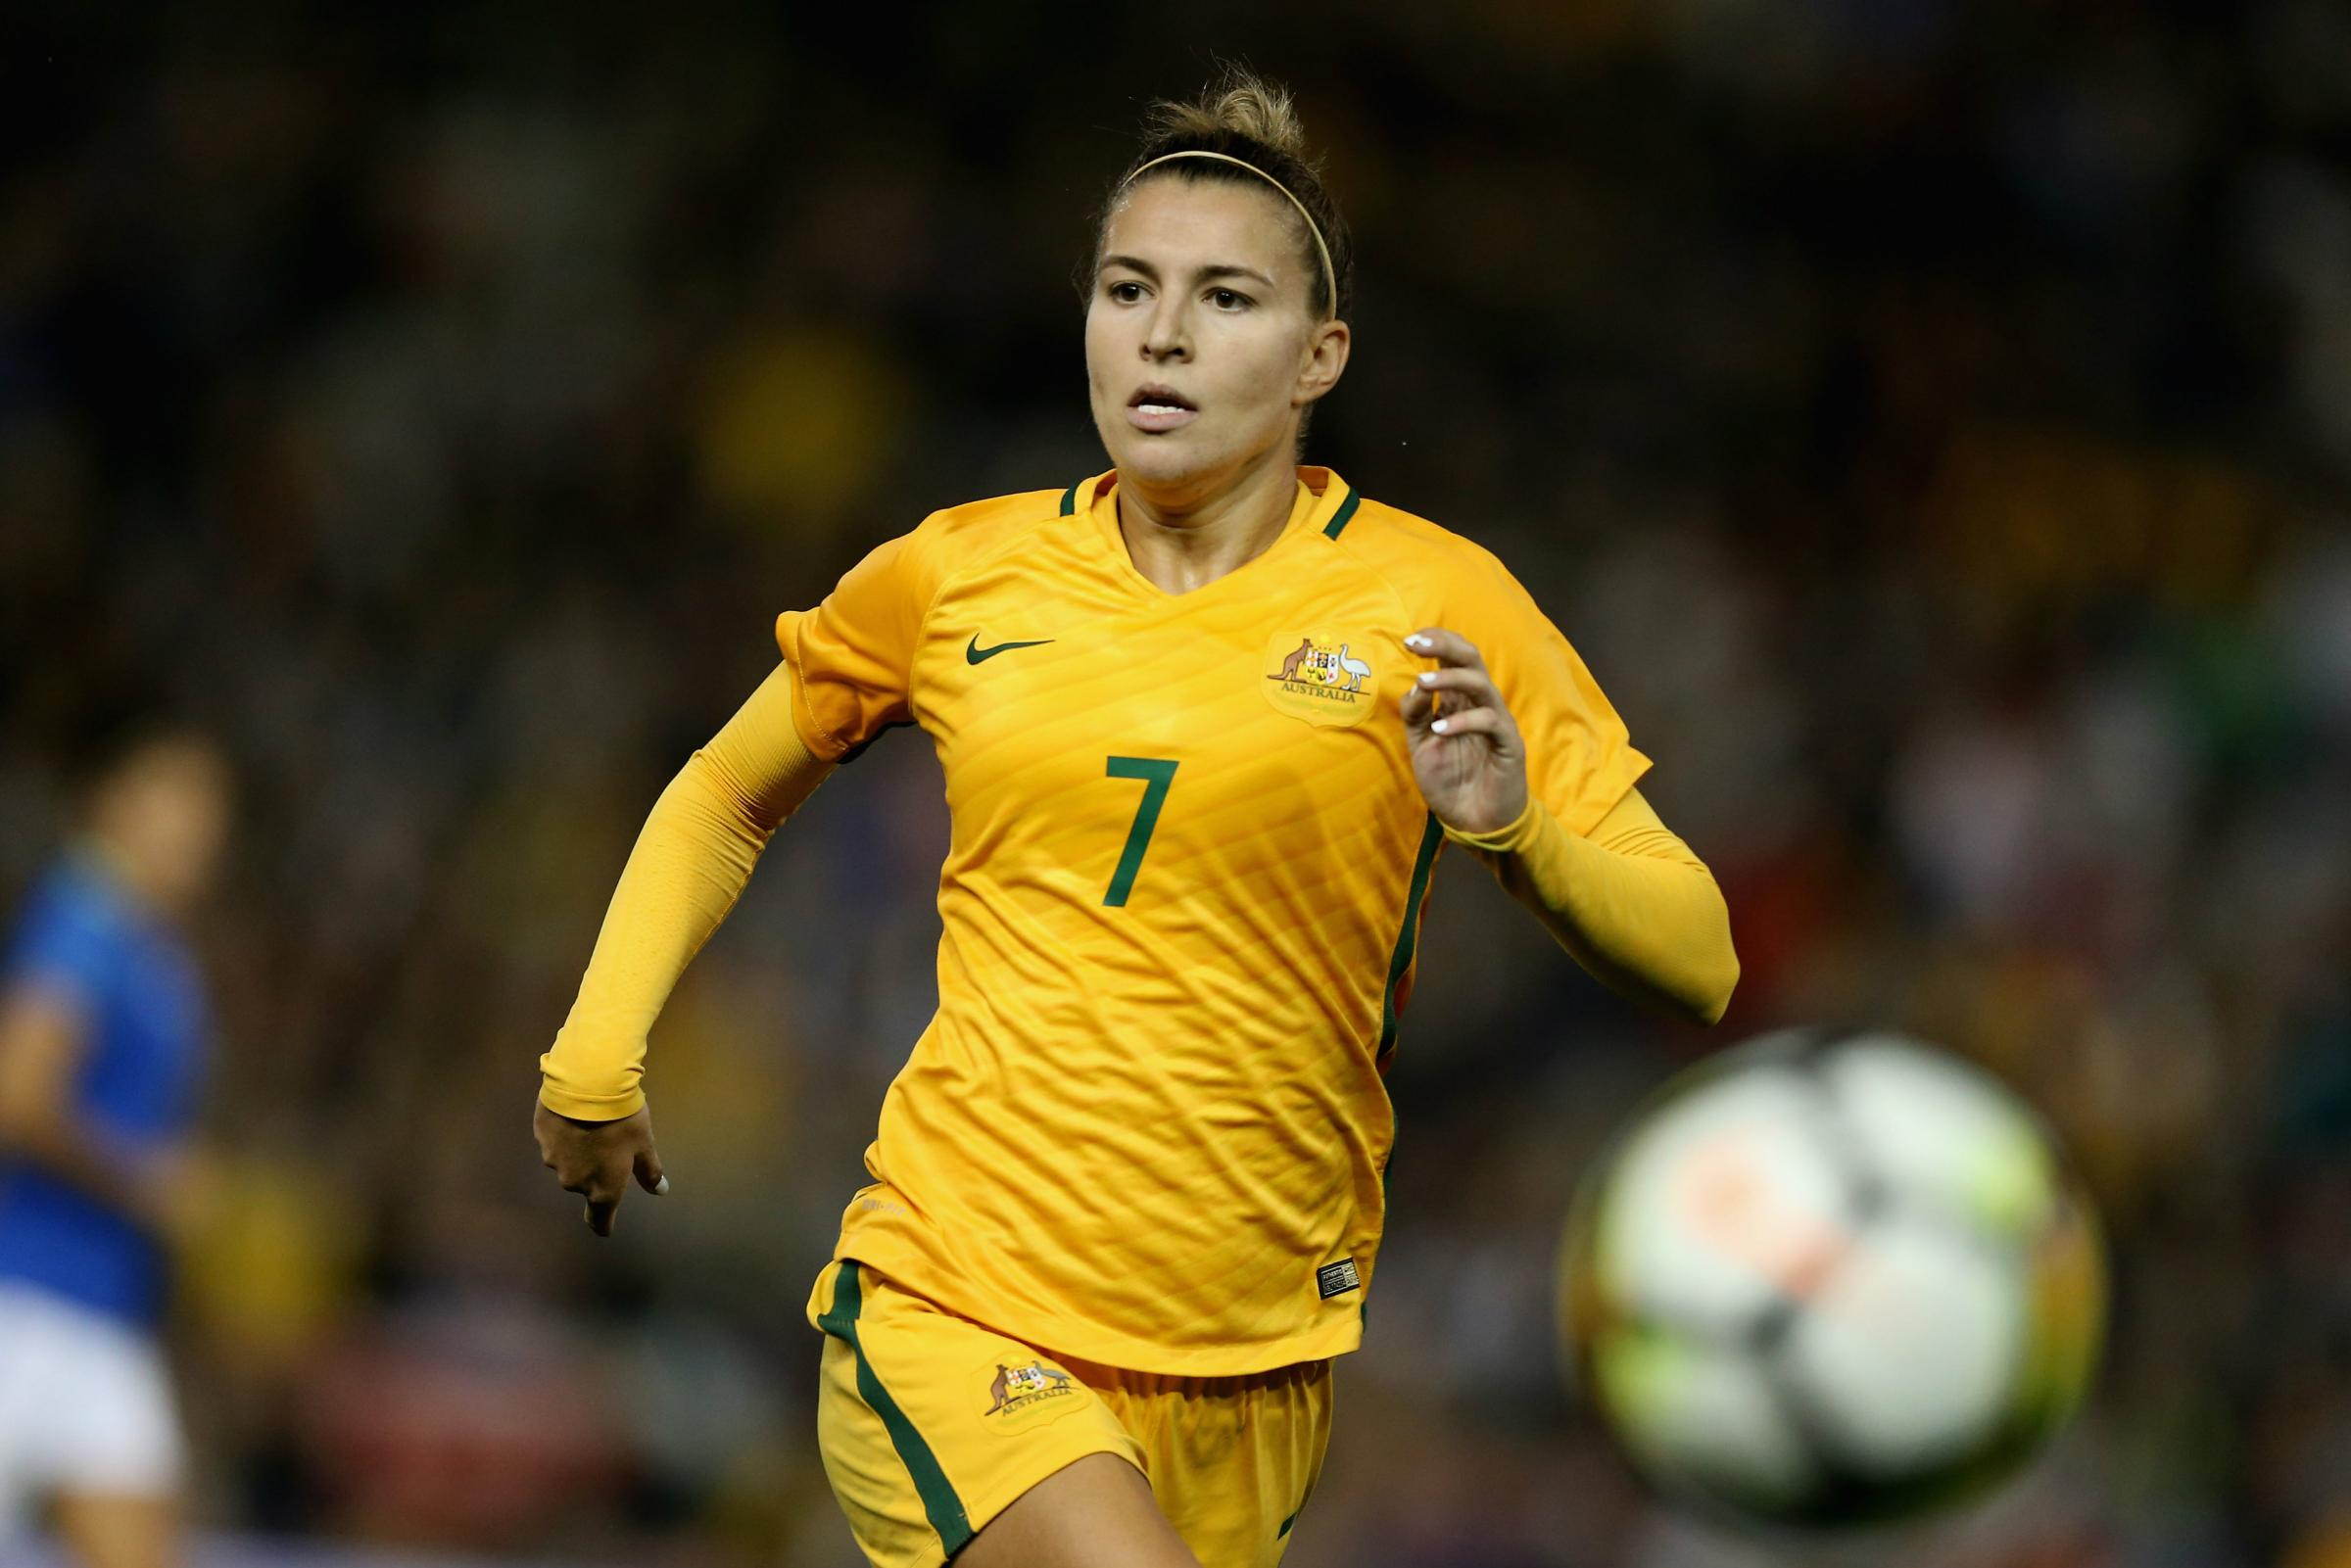 Westfield Matildas star Steph Catley has been nominated for the best defender award.